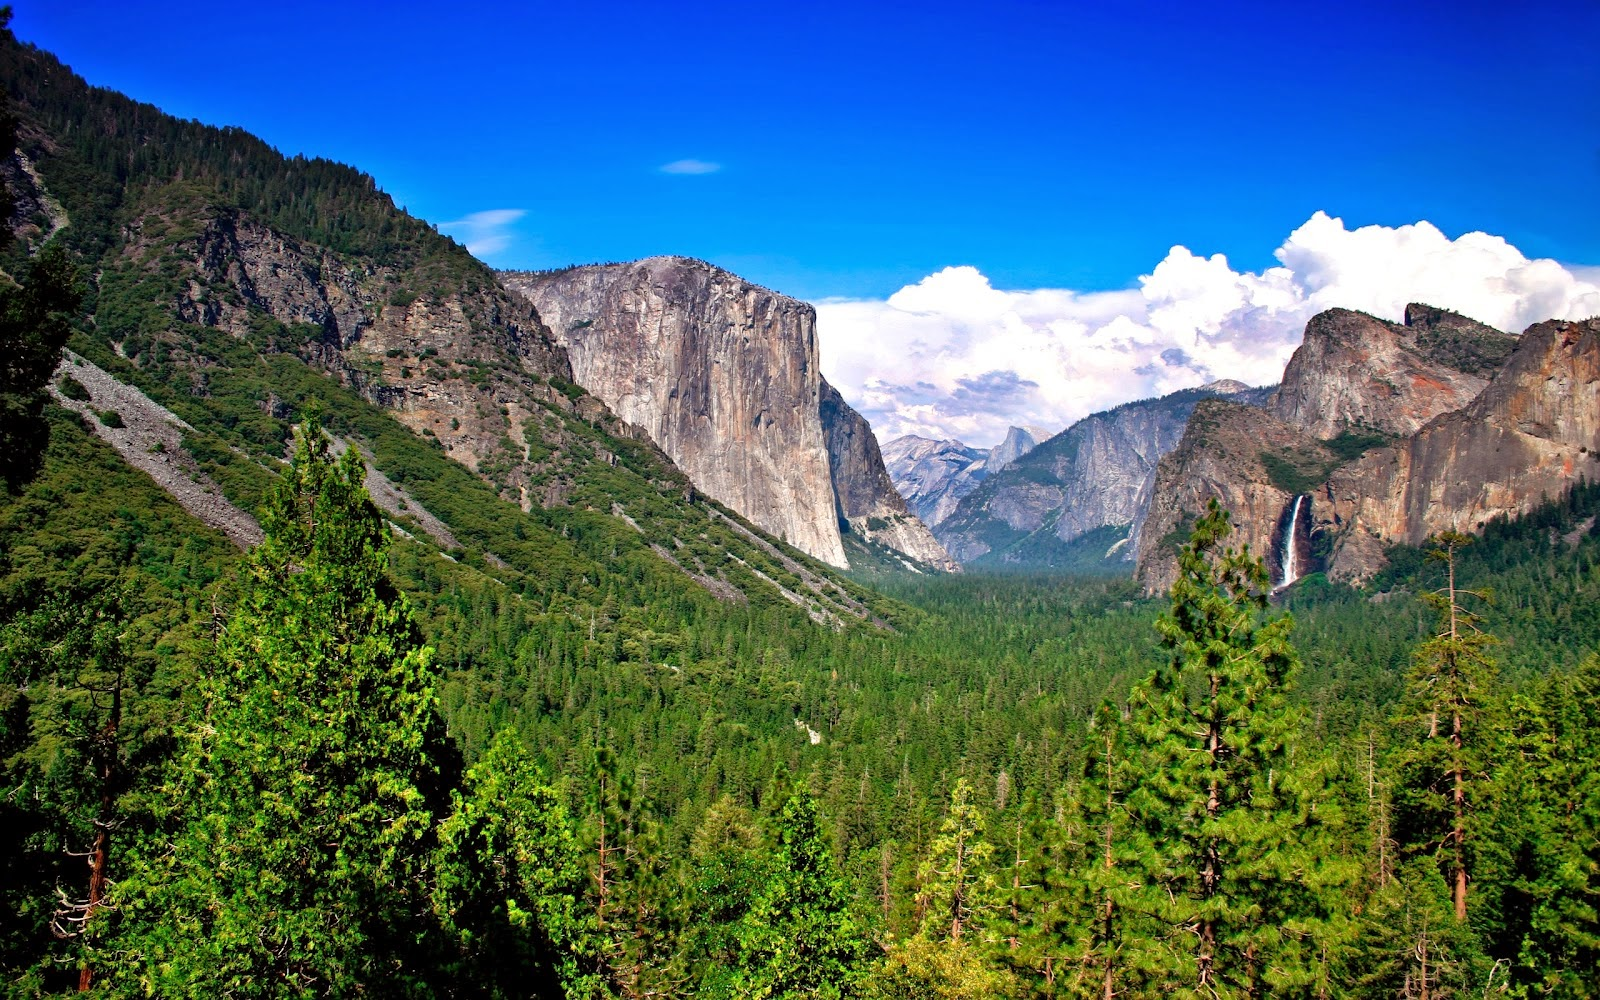 Yosemite wallpaper wallpaper hd - Yosemite national park hd wallpaper ...